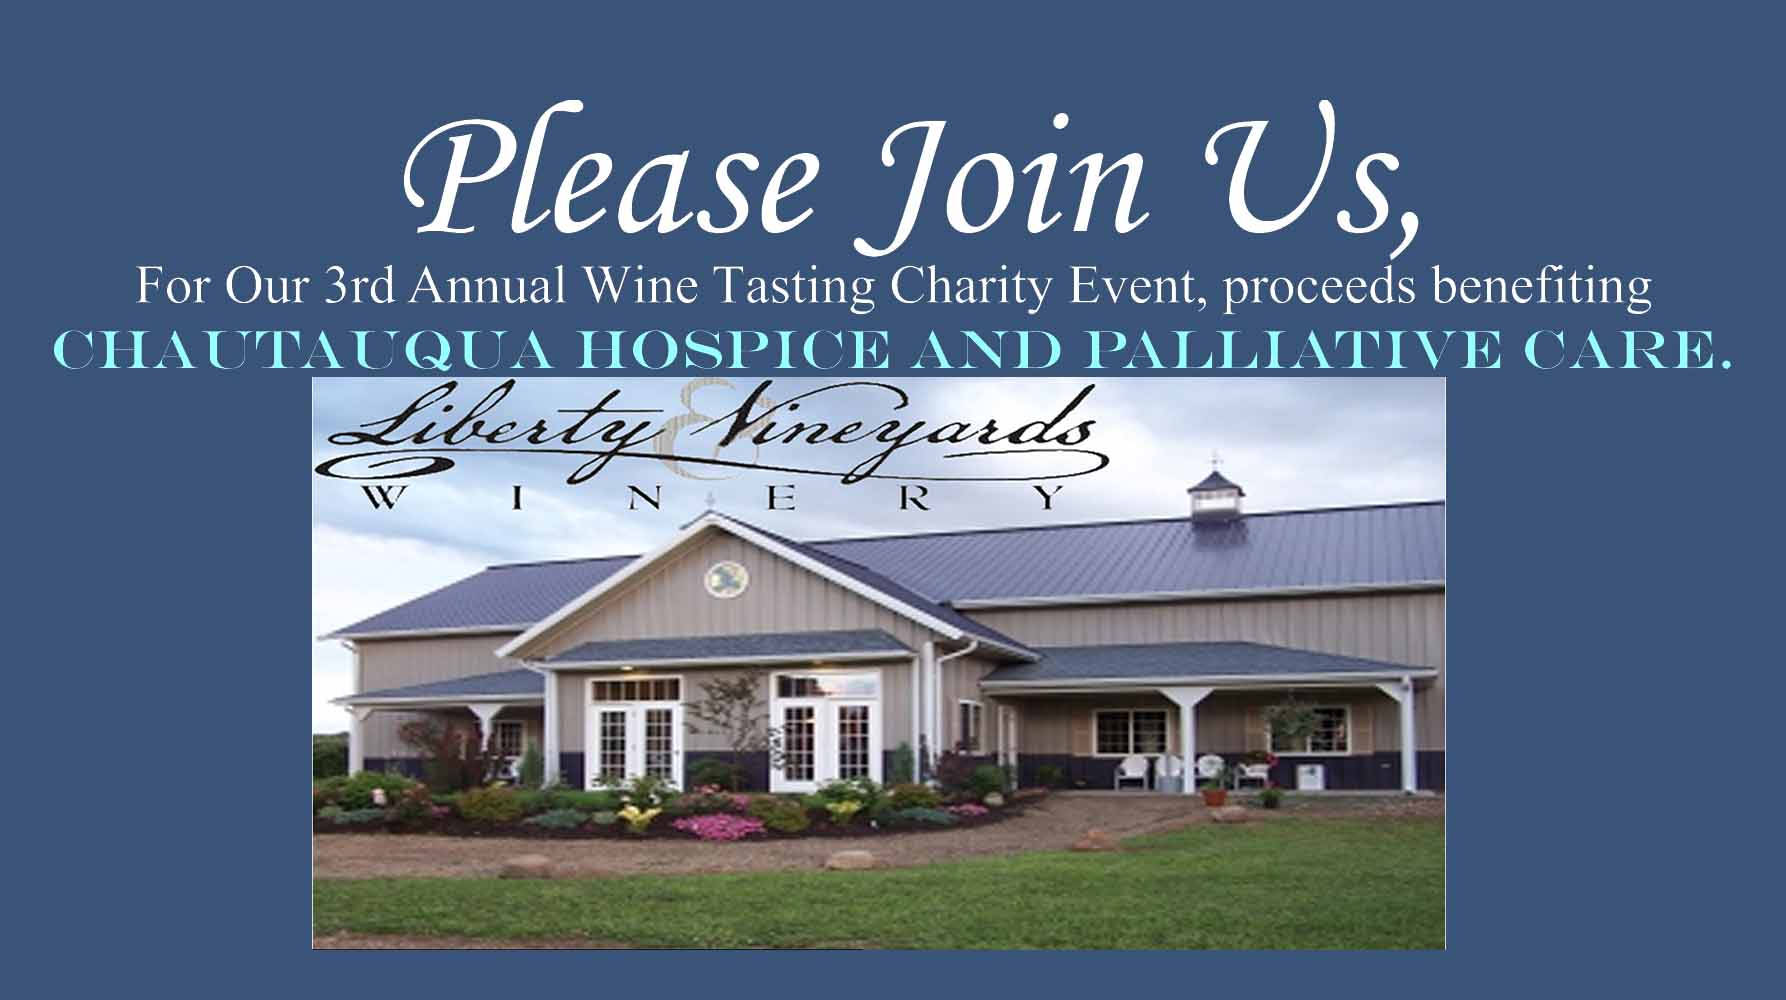 Please Join Us For Our 3rd Annual Charity Wine Tasting Event